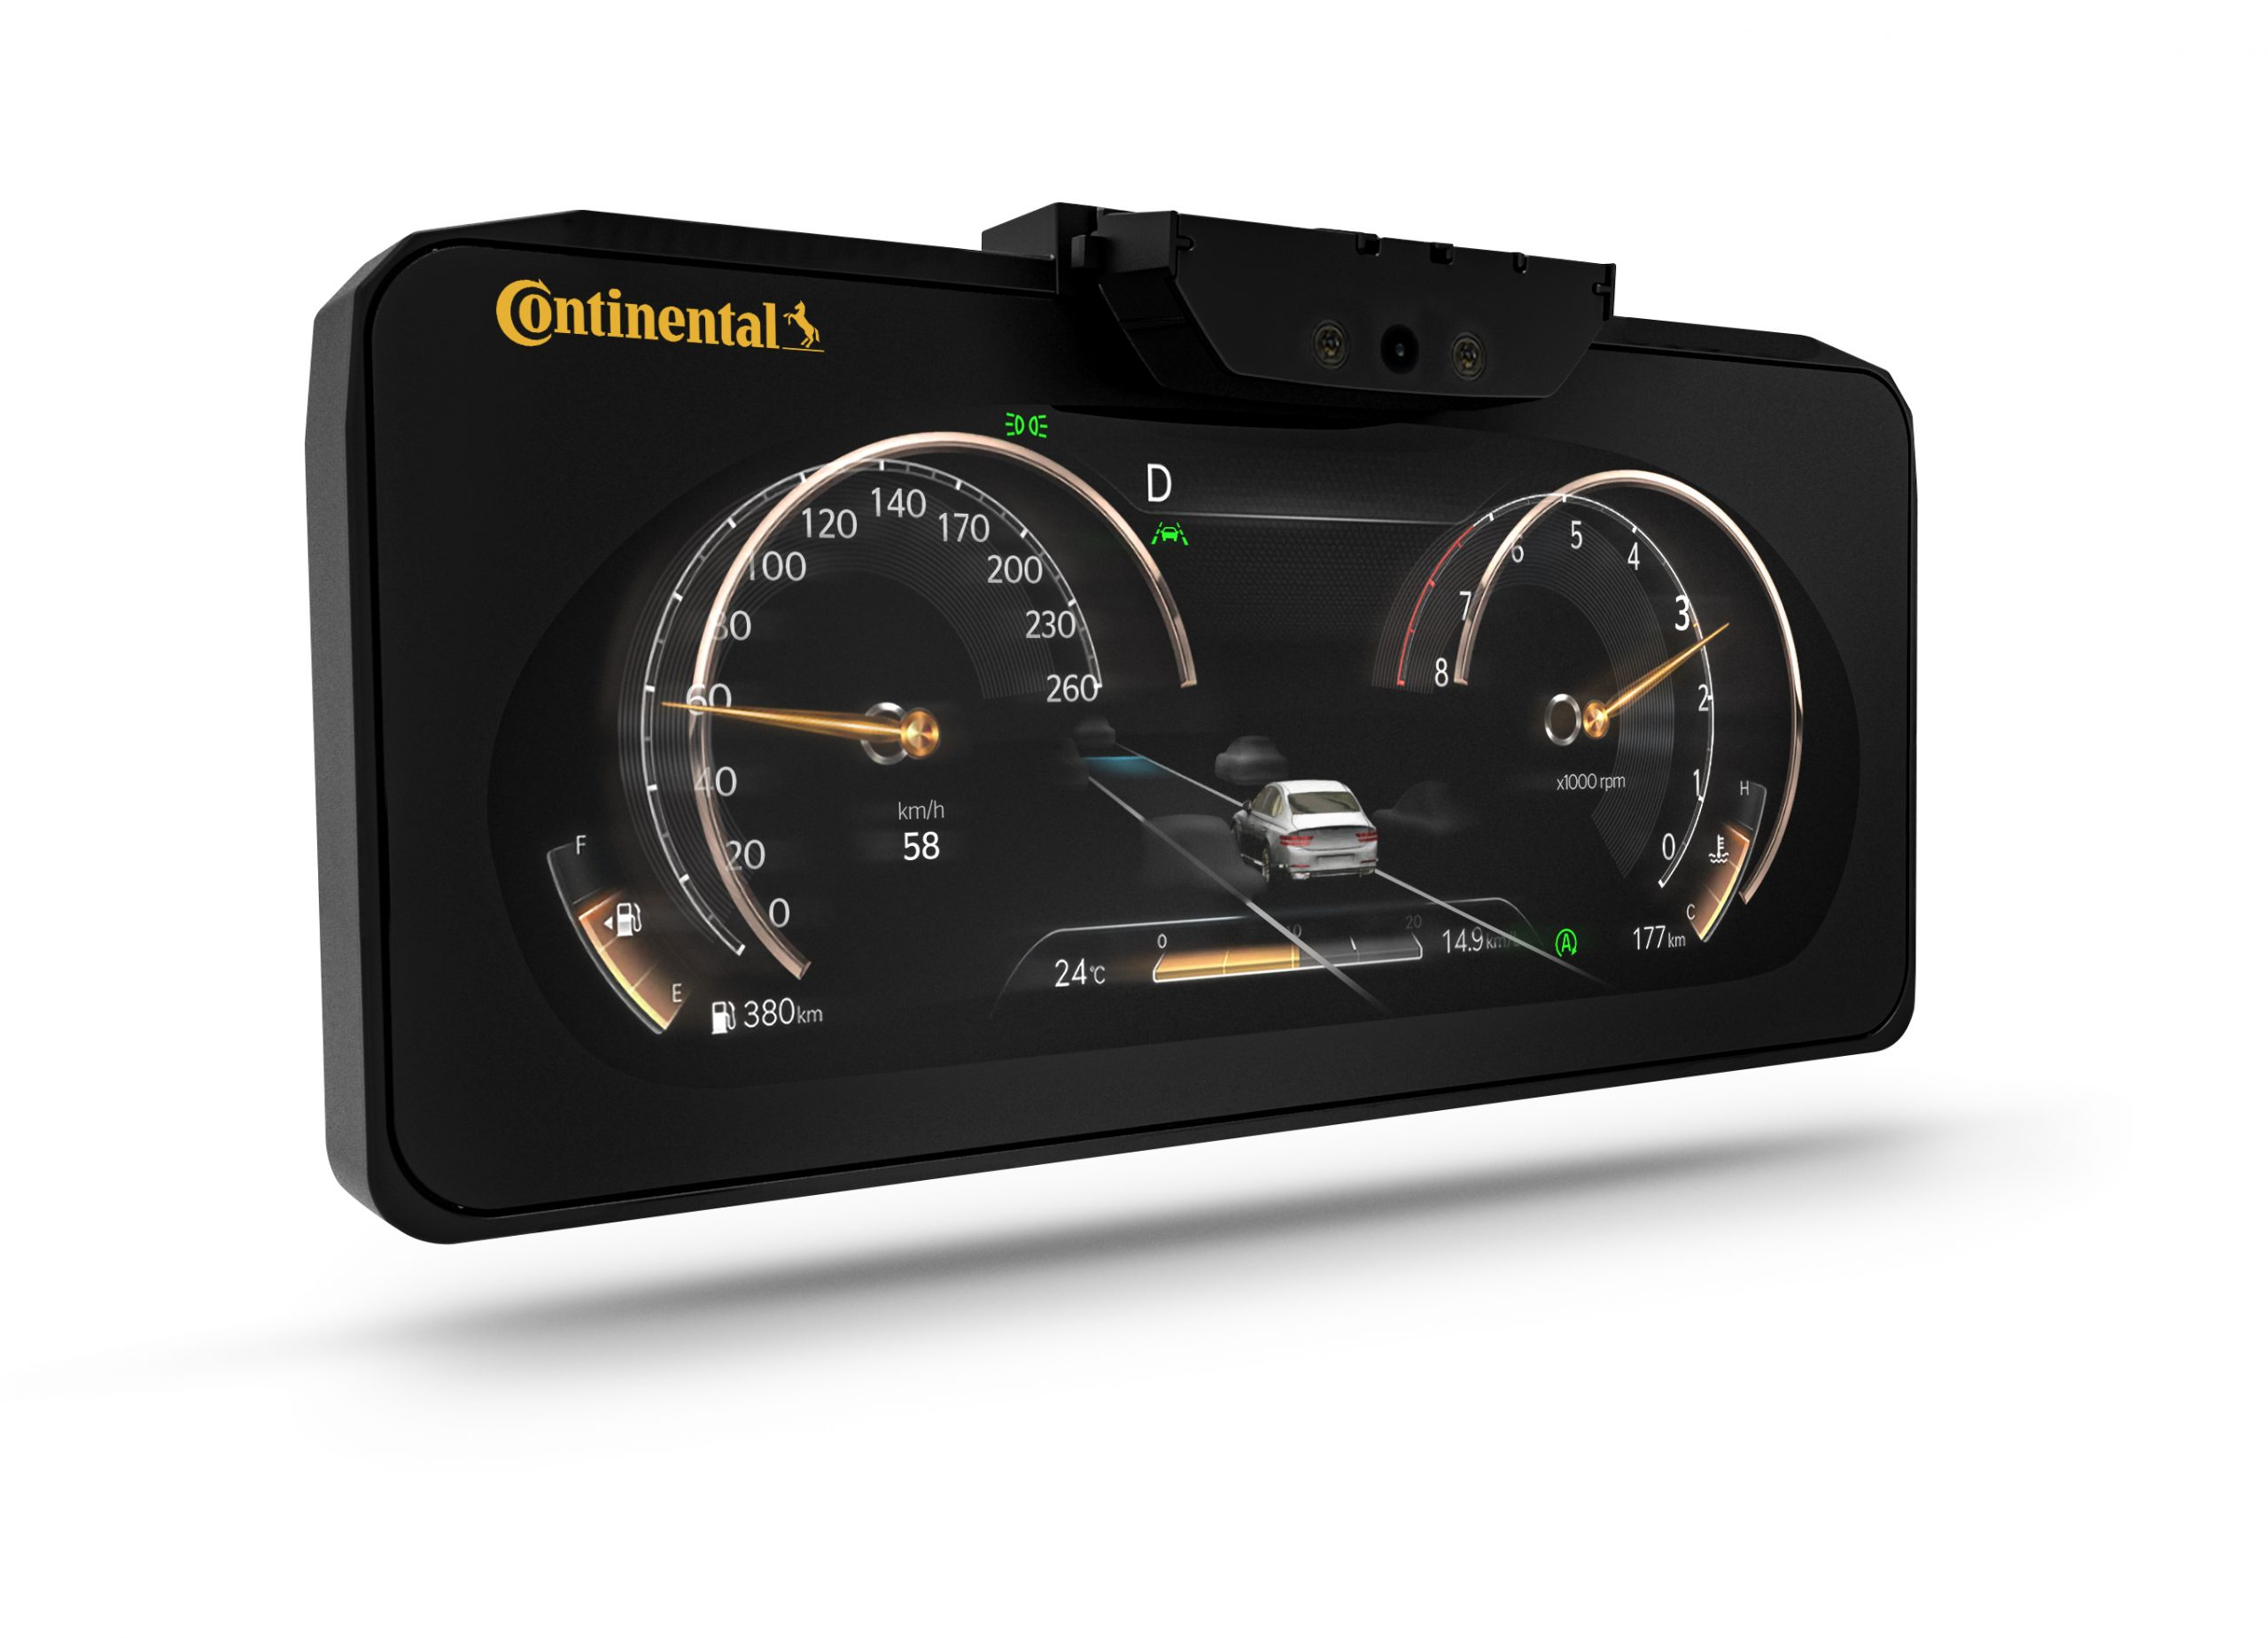 Continental Brings 3D Cluster for Genesis GV80 & G80